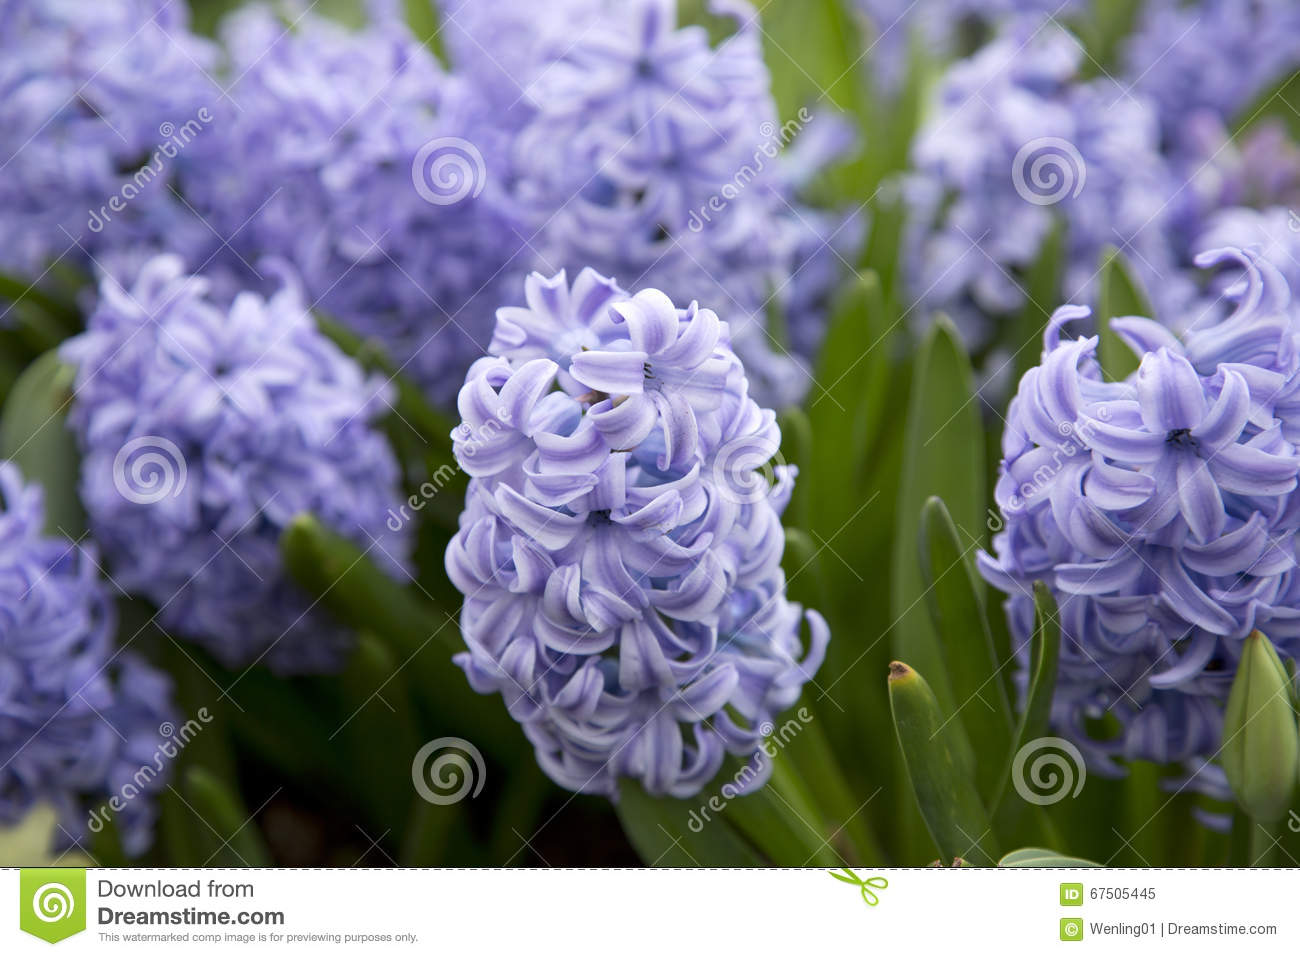 Blue hyacinth  growing in the garden